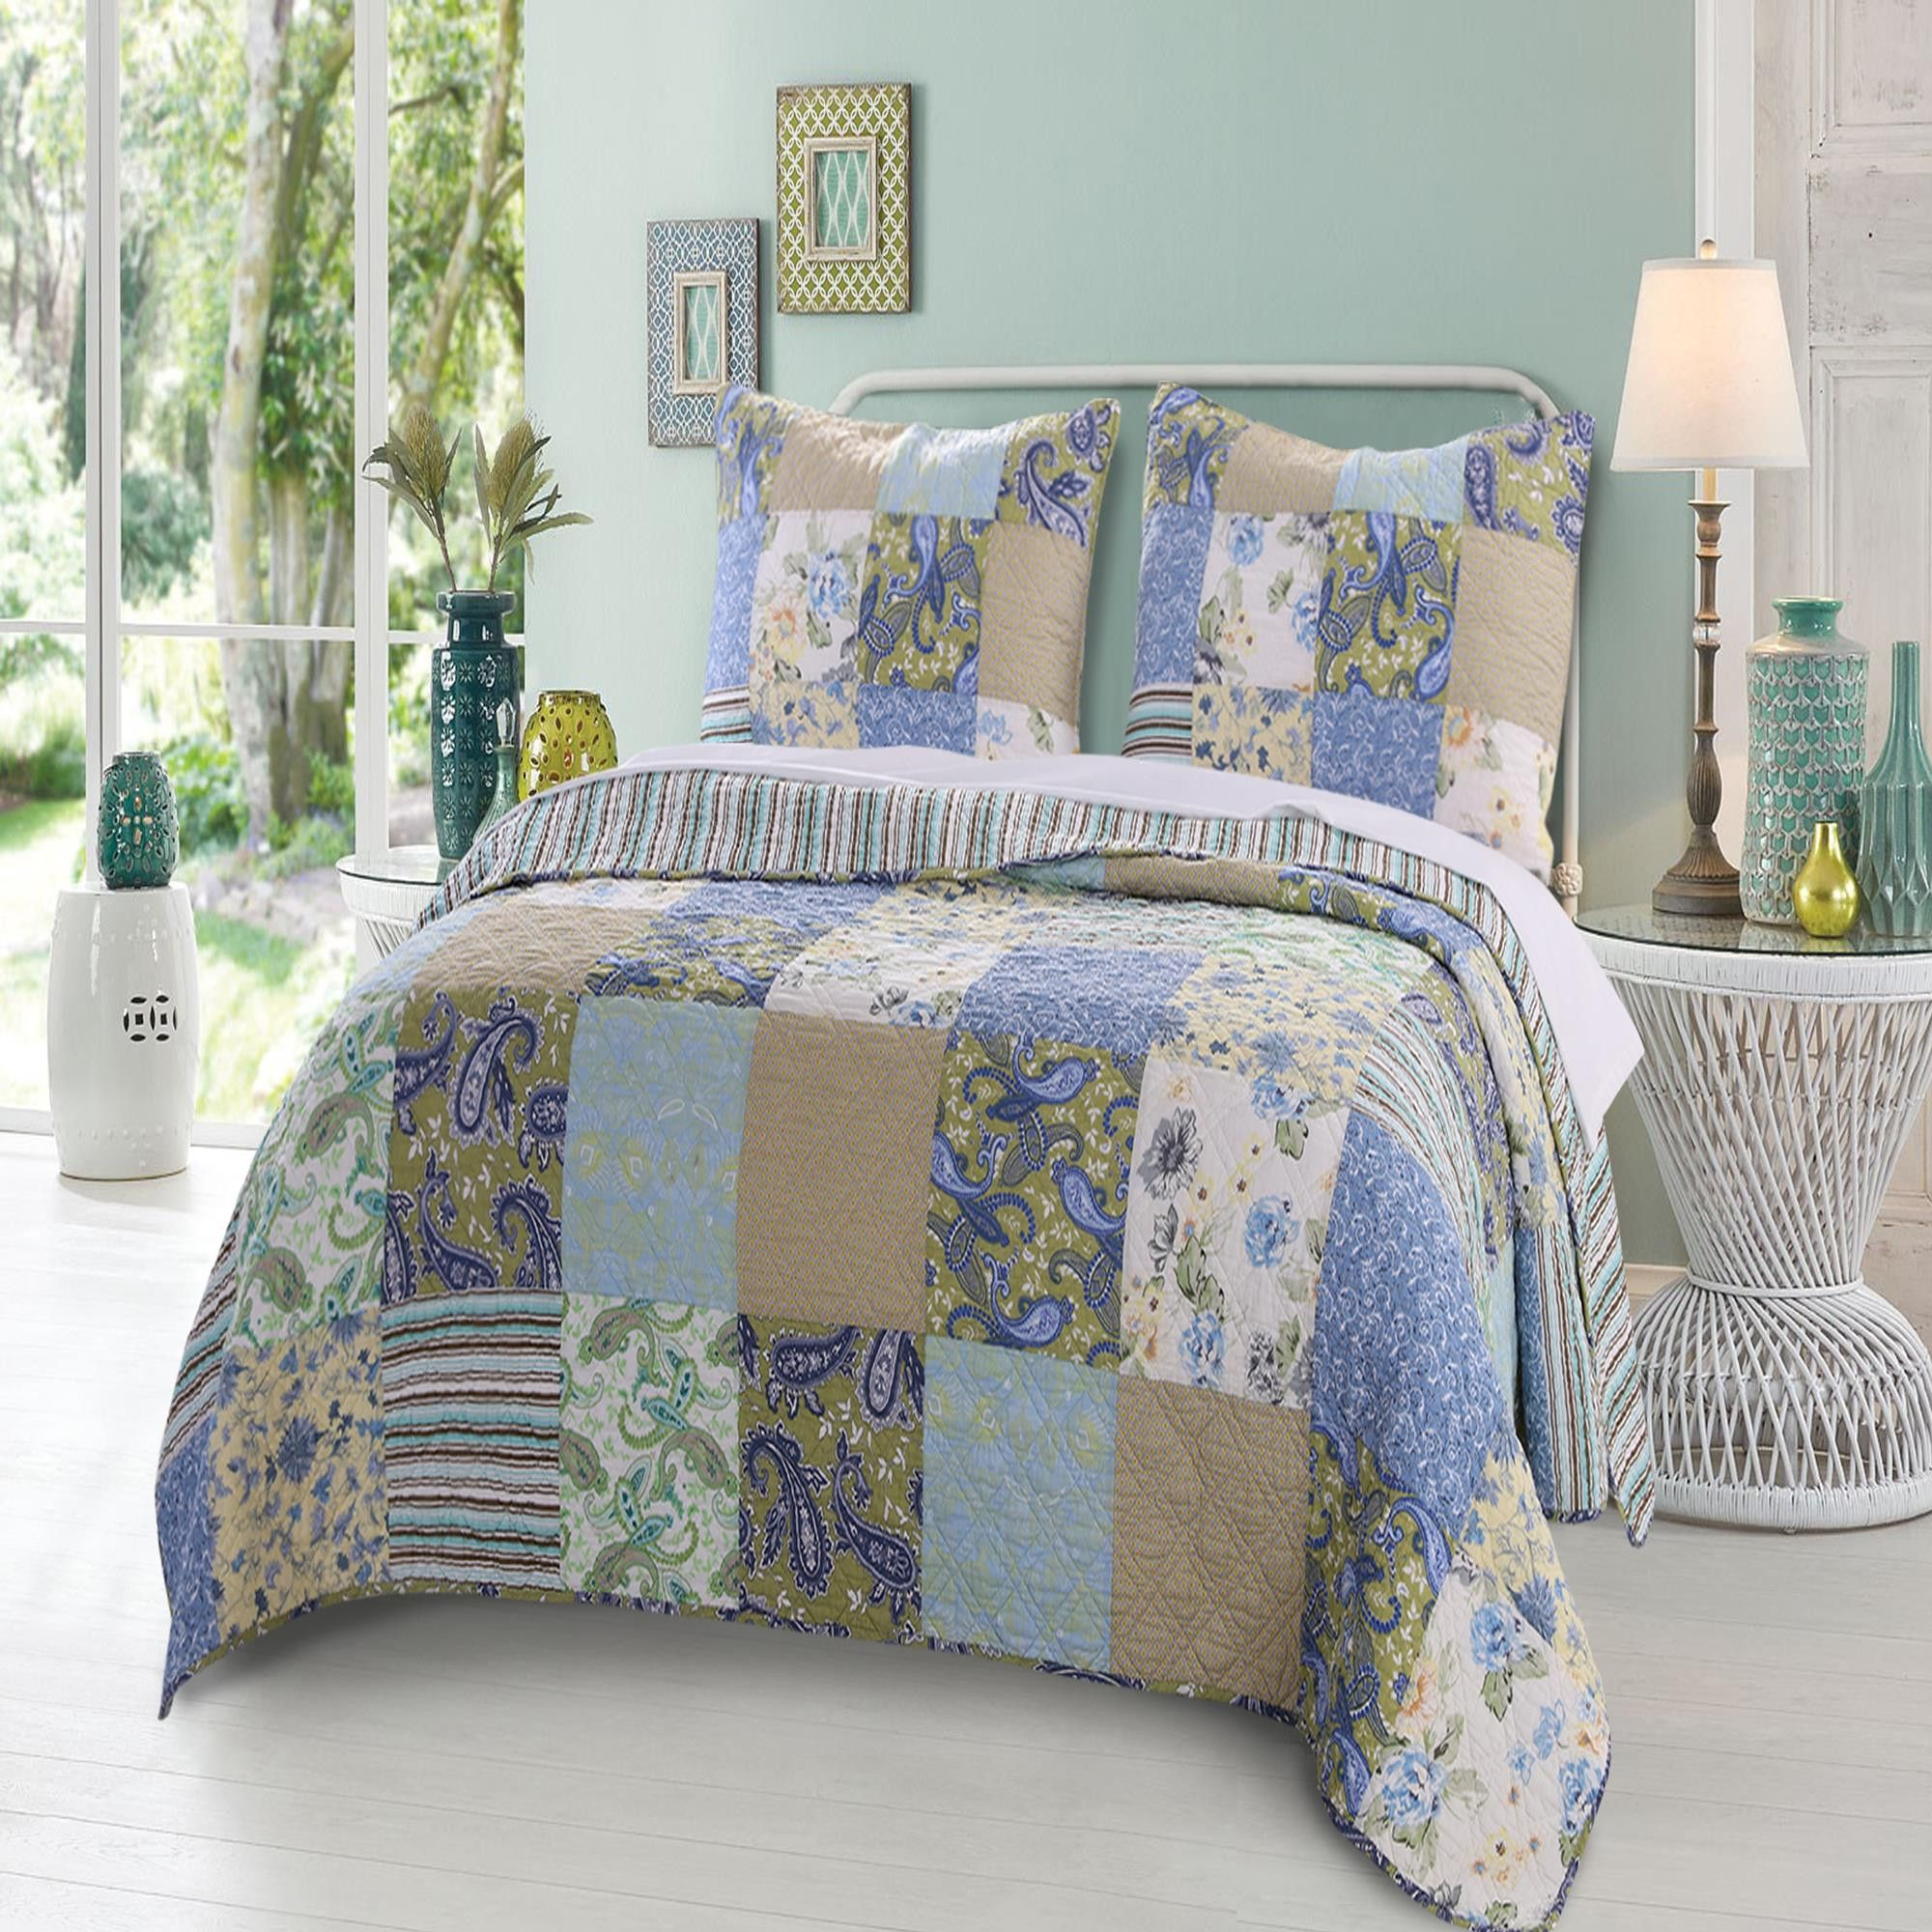 quilt queen comforter set views more teal buy paislette furniture ashley b